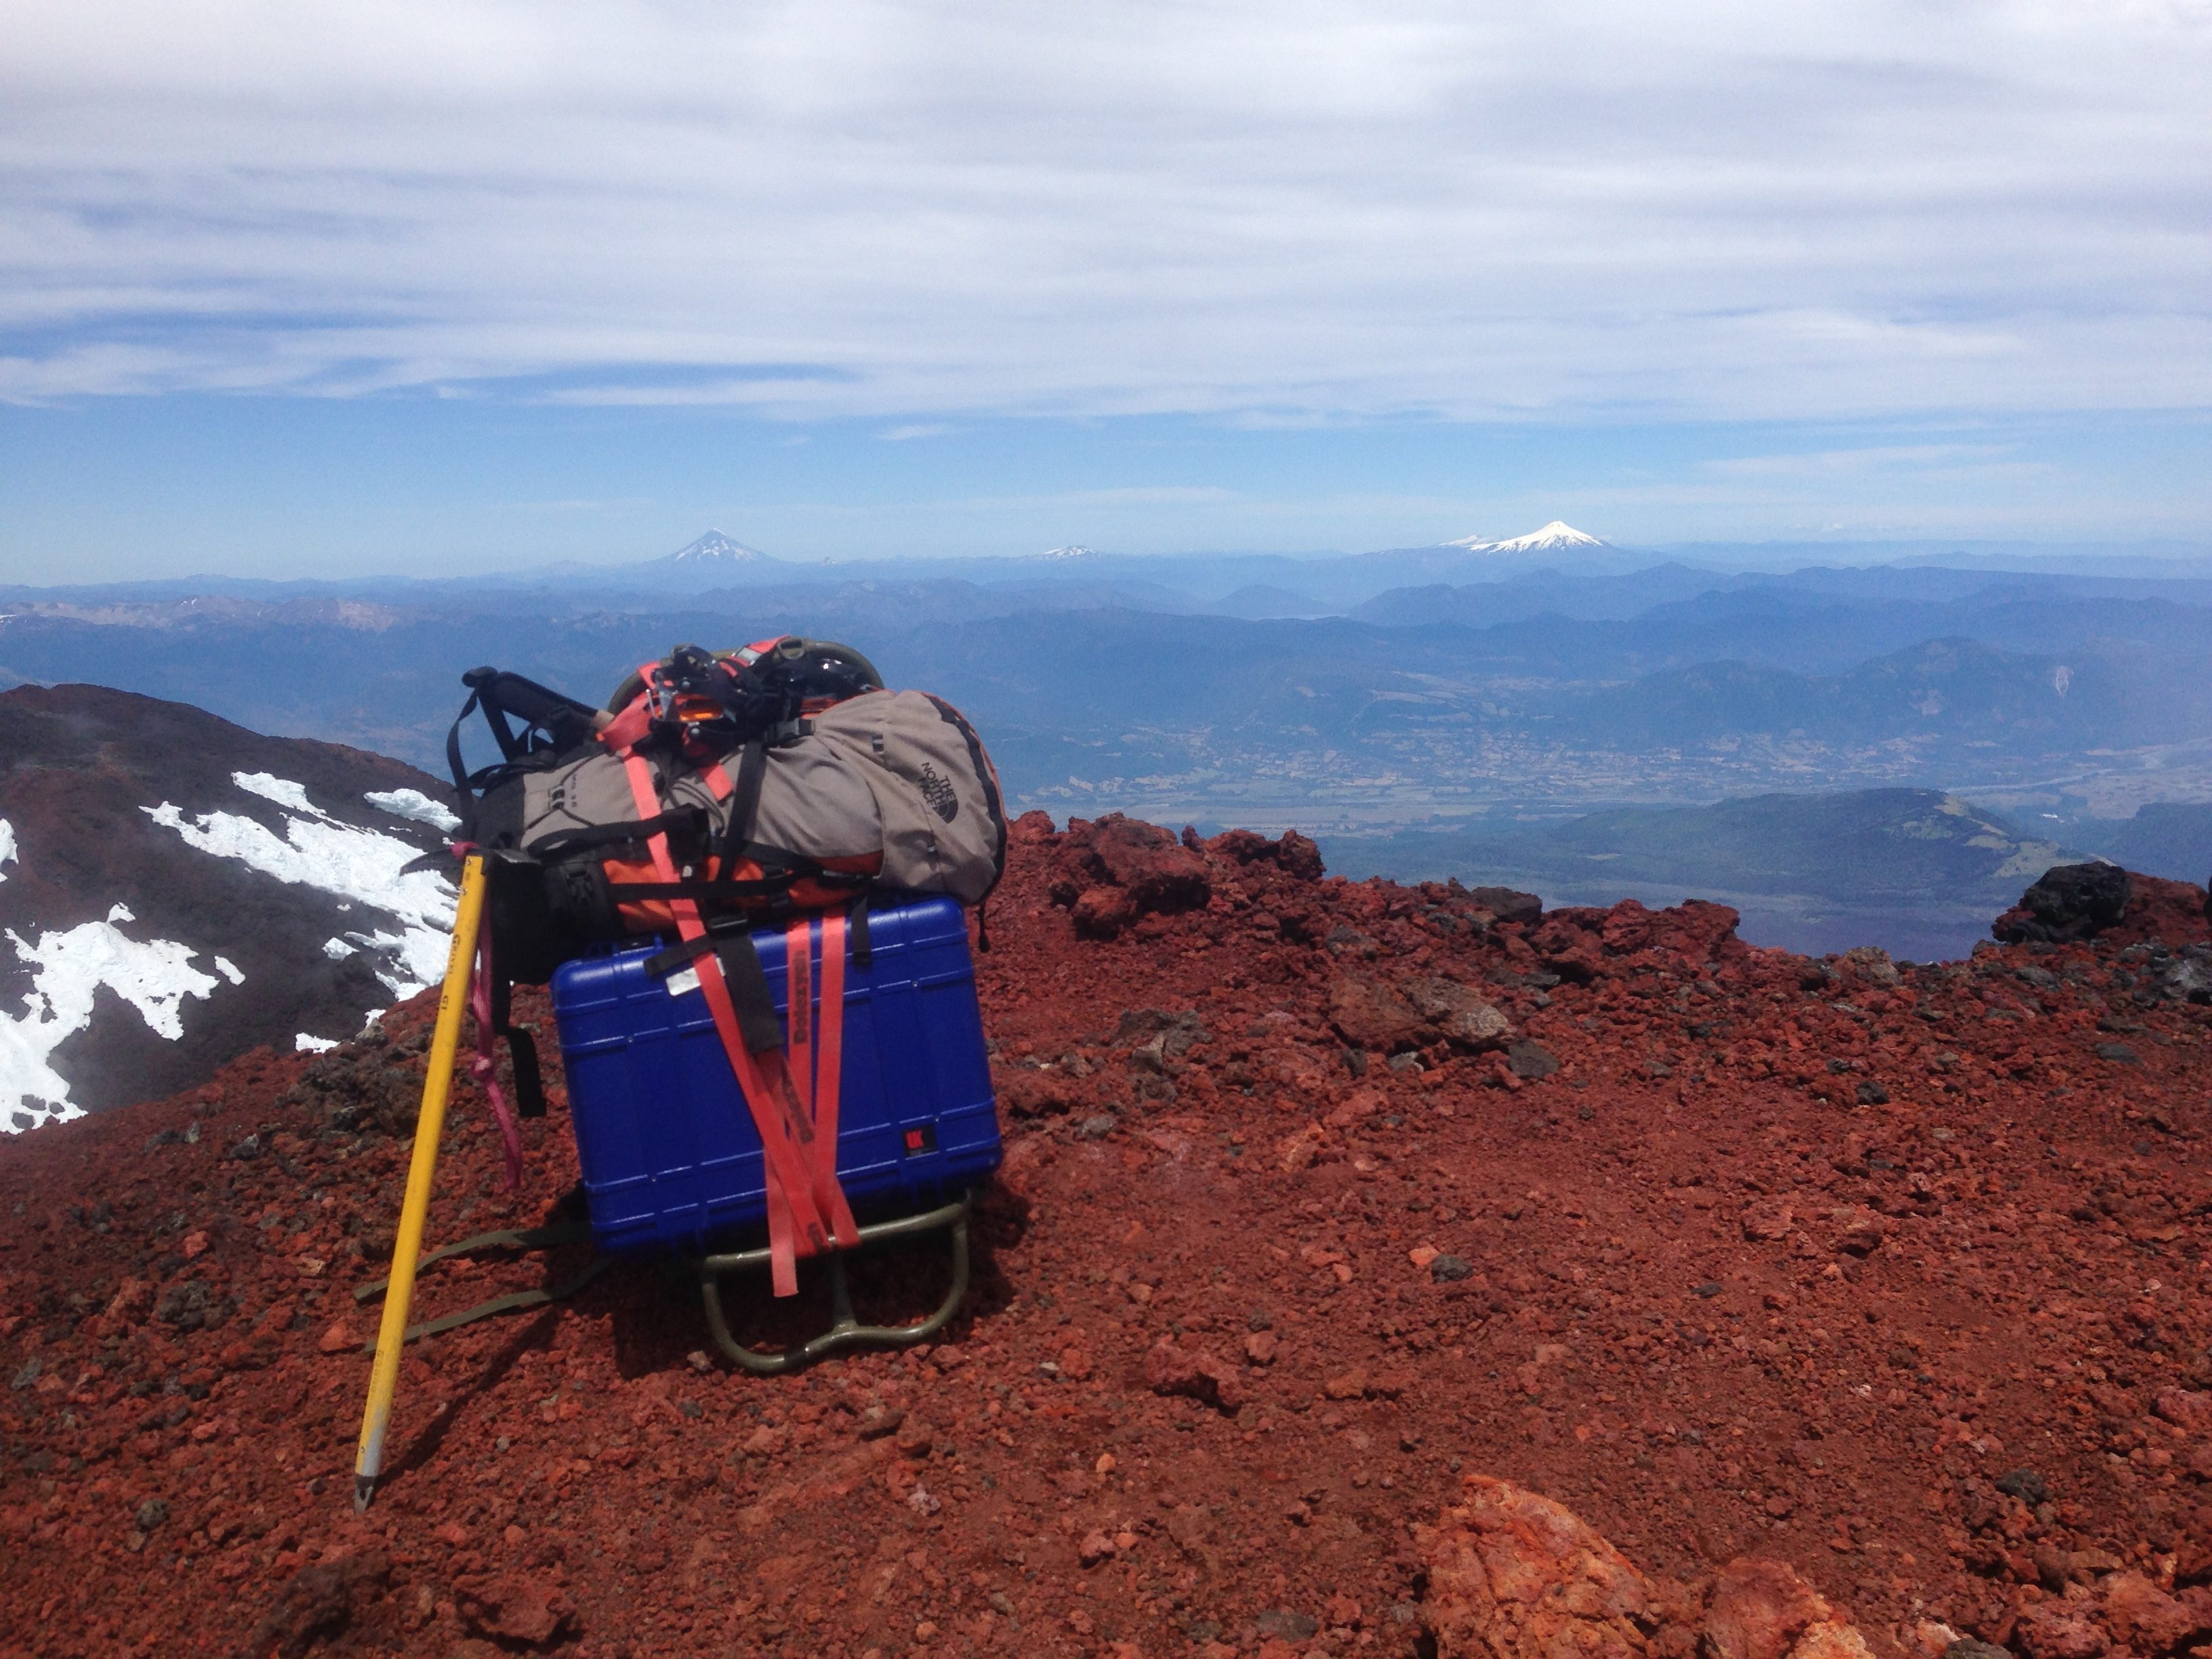 Prepping for installation at the top of Llaima Volcano, Chile. The Meridian Compact PH is in the blue box. Everything but the battery and solar panel fit in the box!